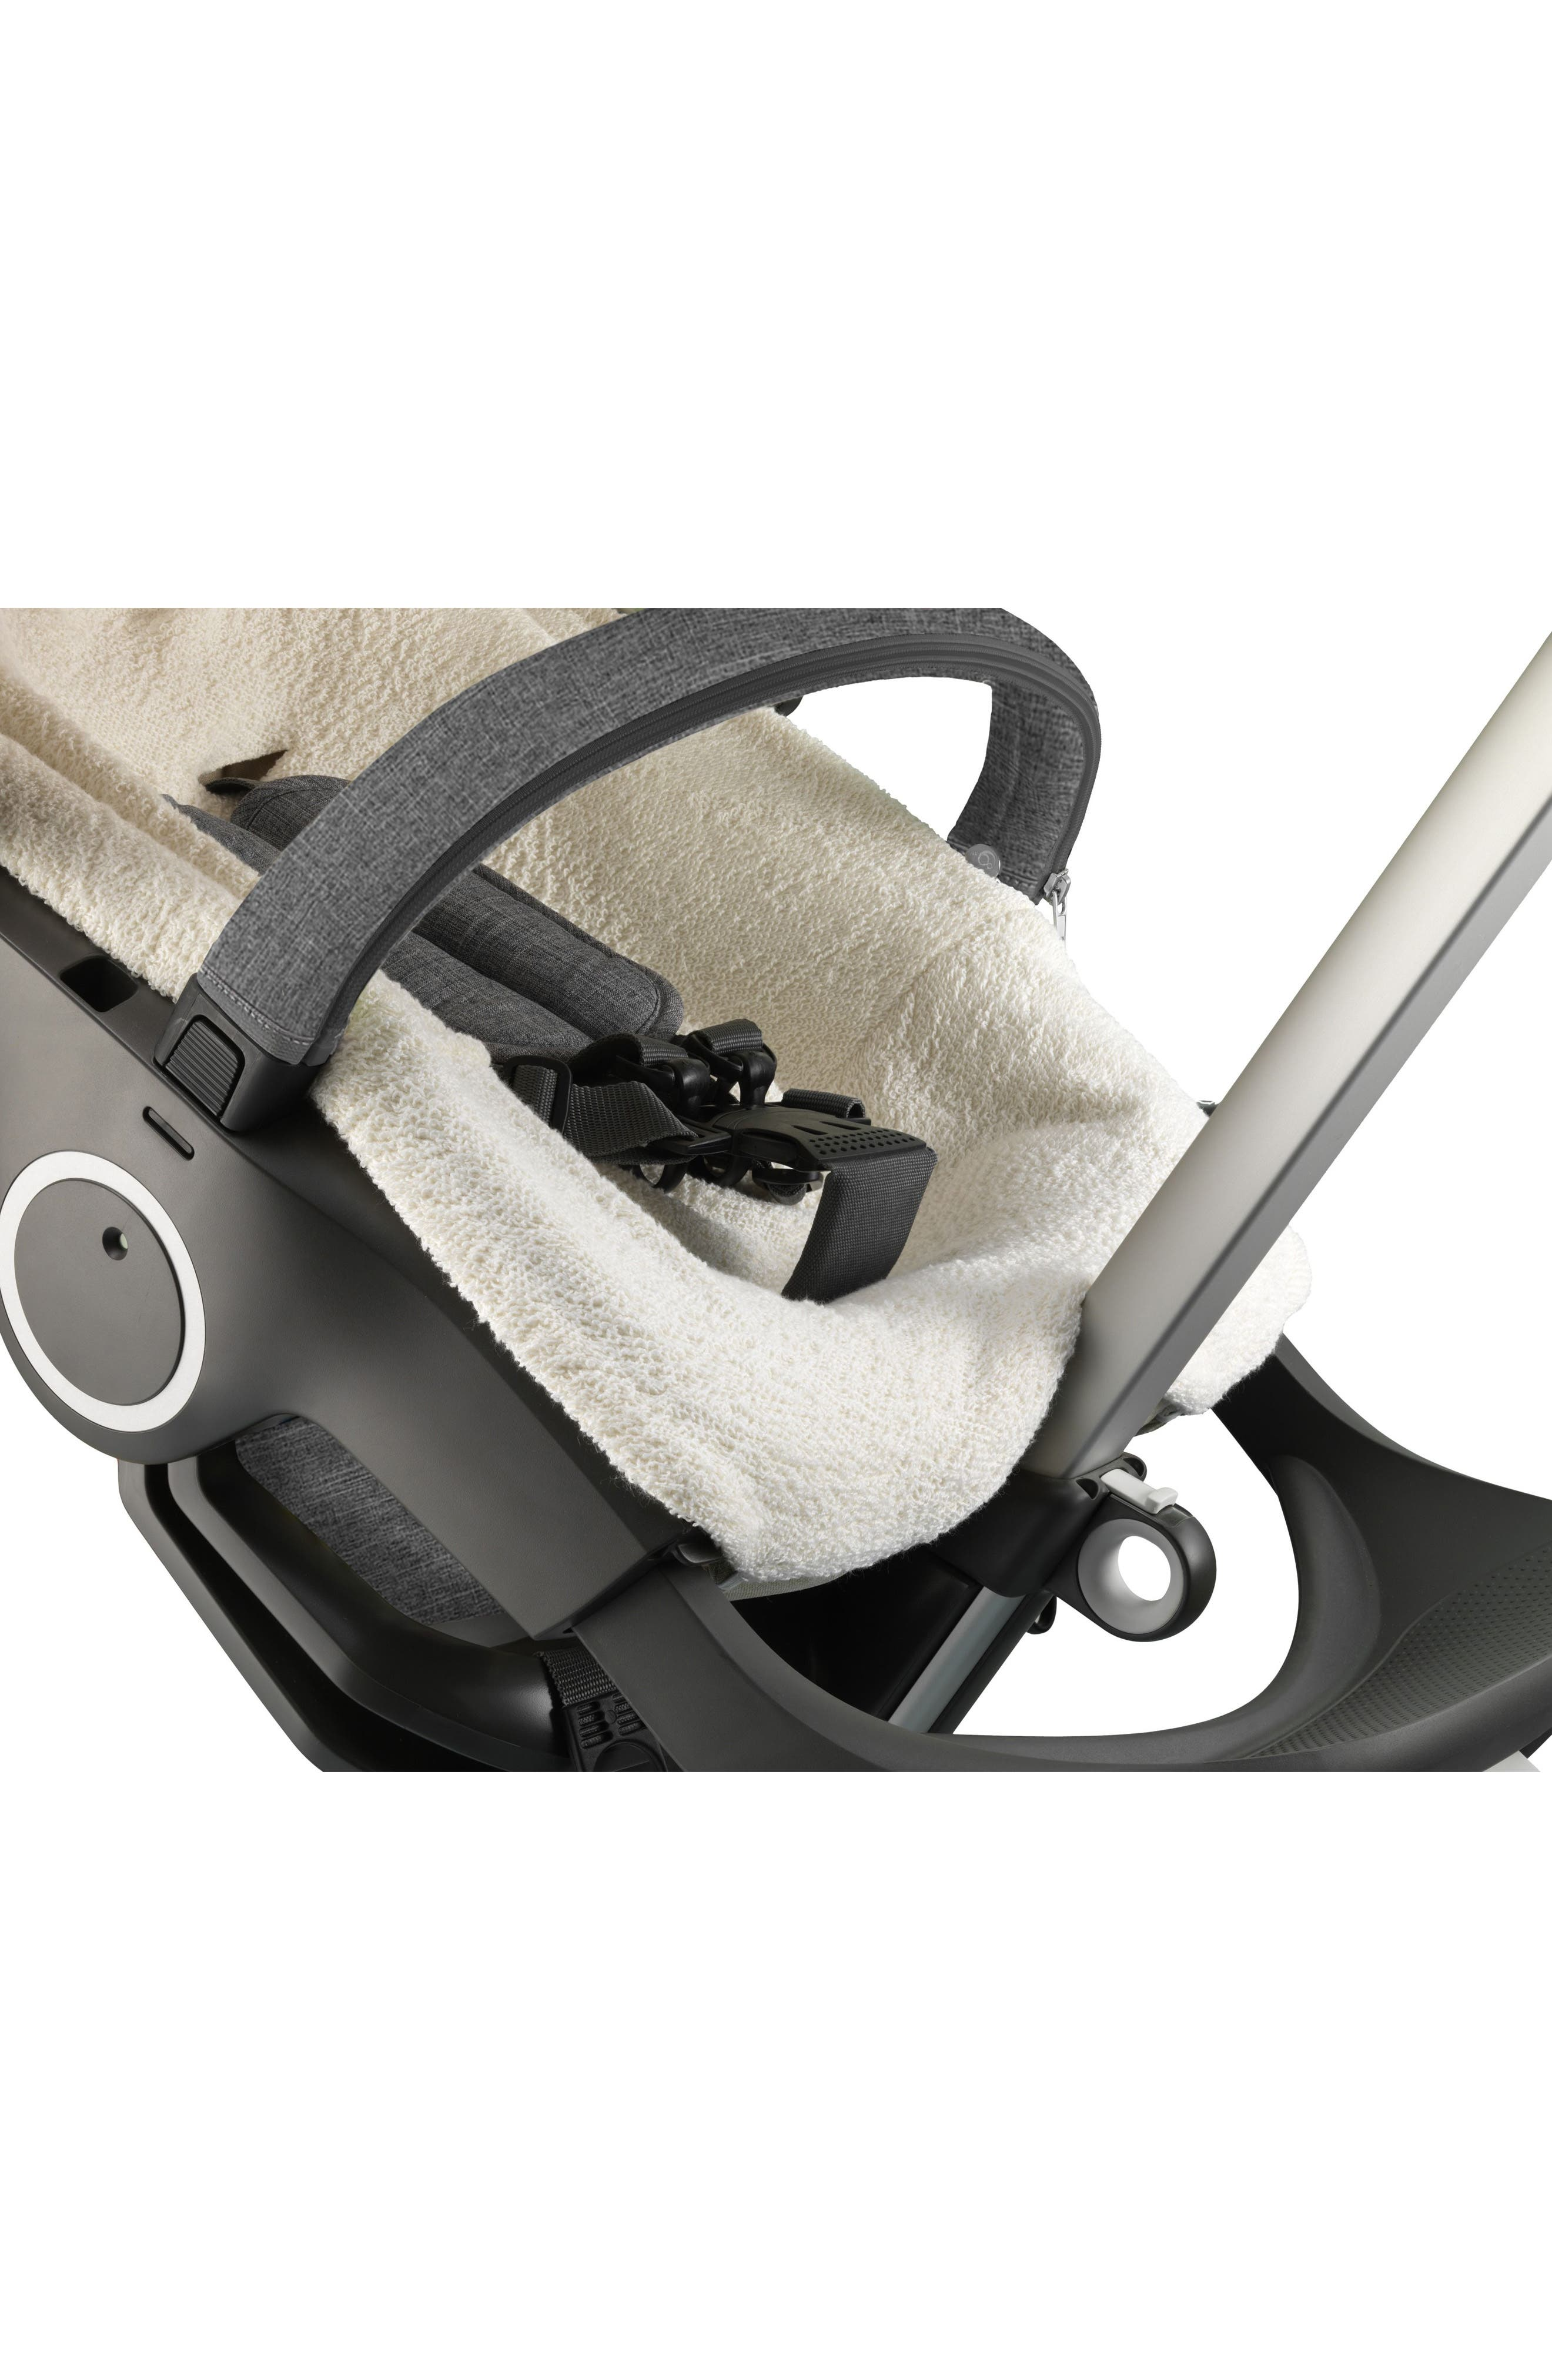 Alternate Image 1 Selected - Stokke Stroller Terry Seat Cover for Xplory/Trailz/Crusi Strollers